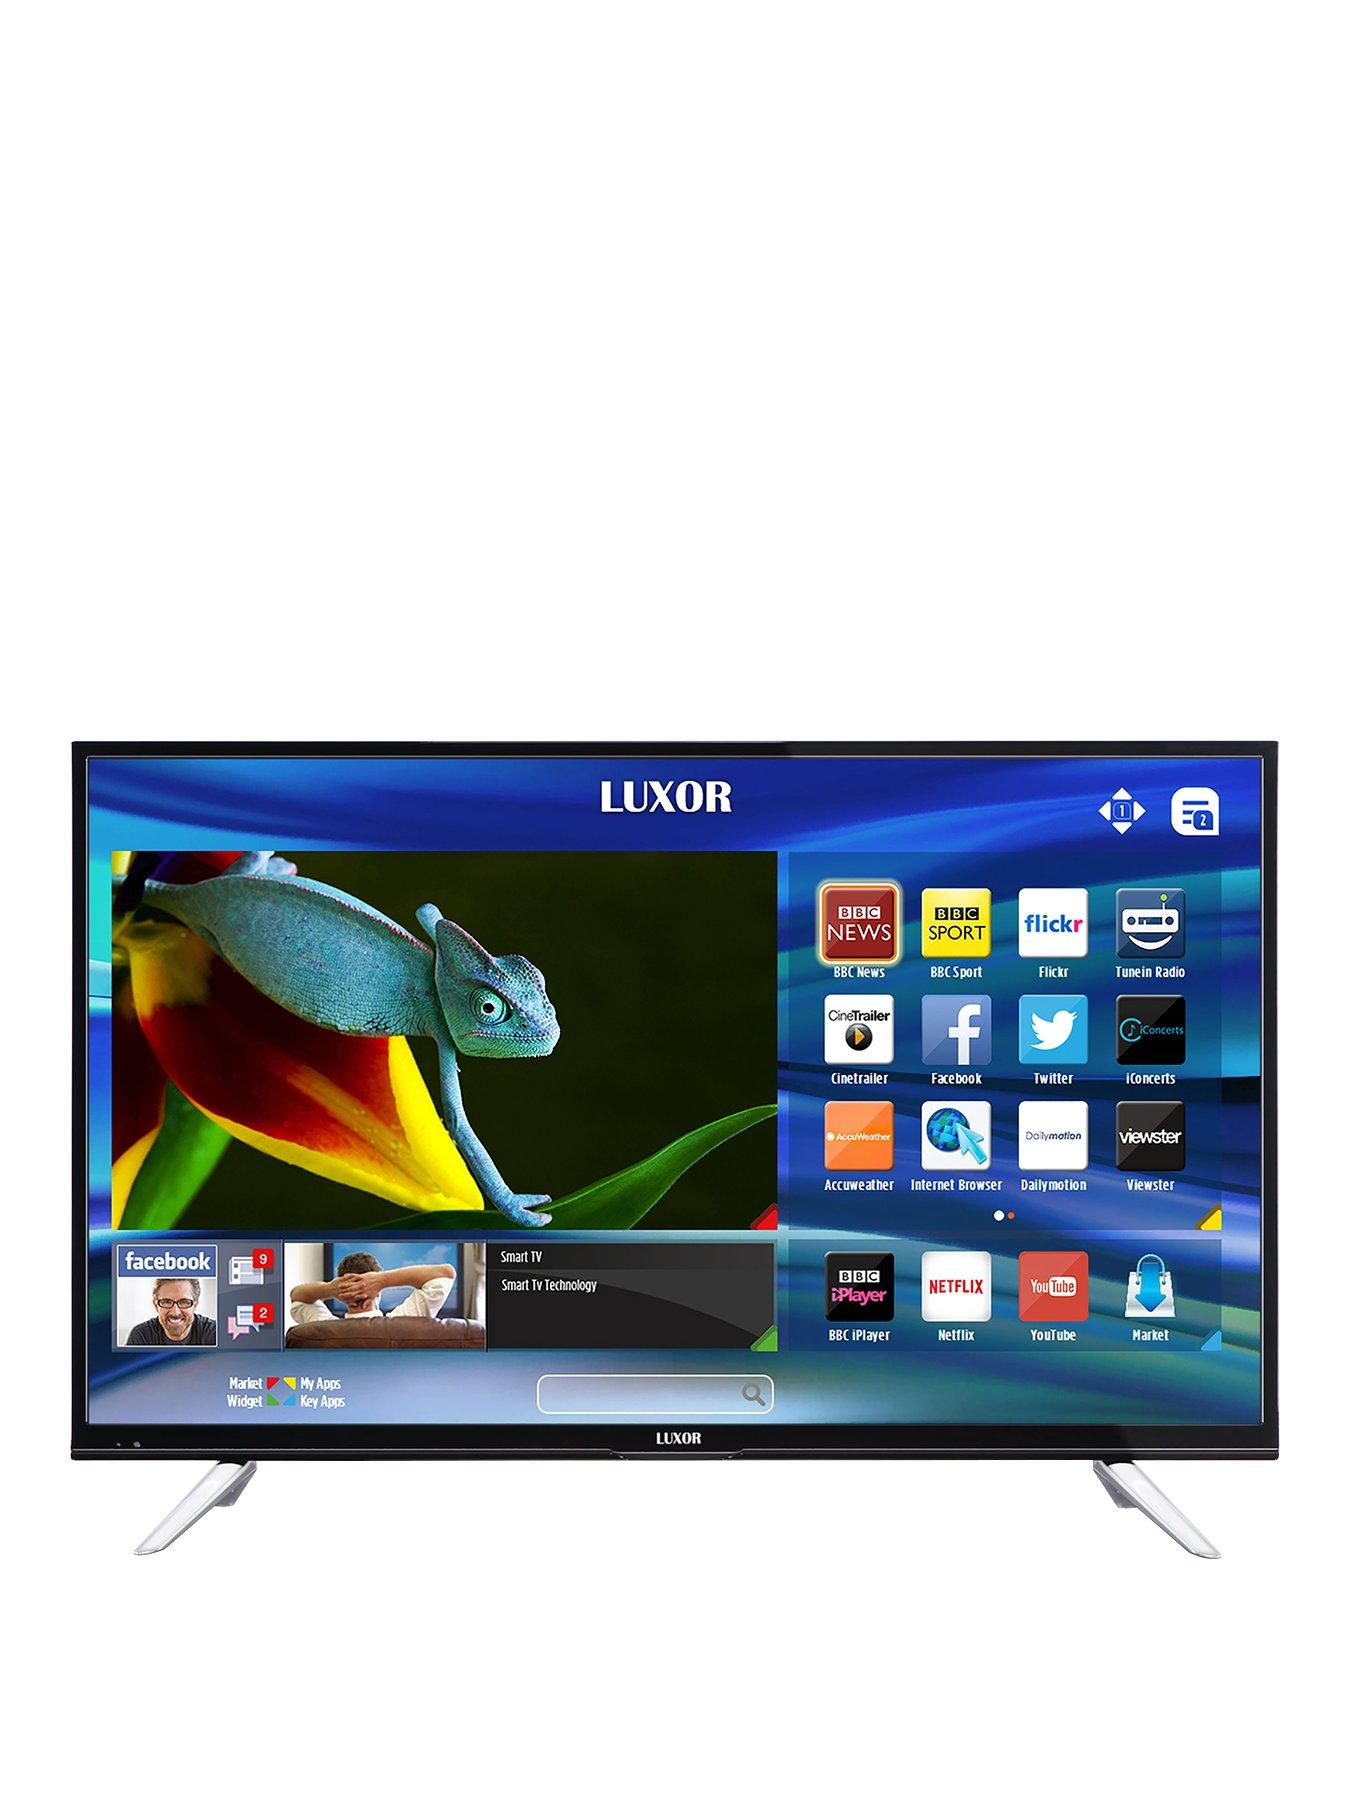 Compare cheap offers & prices of Luxor 43 Inch 4K Ultra HD Smart TV manufactured by Luxor